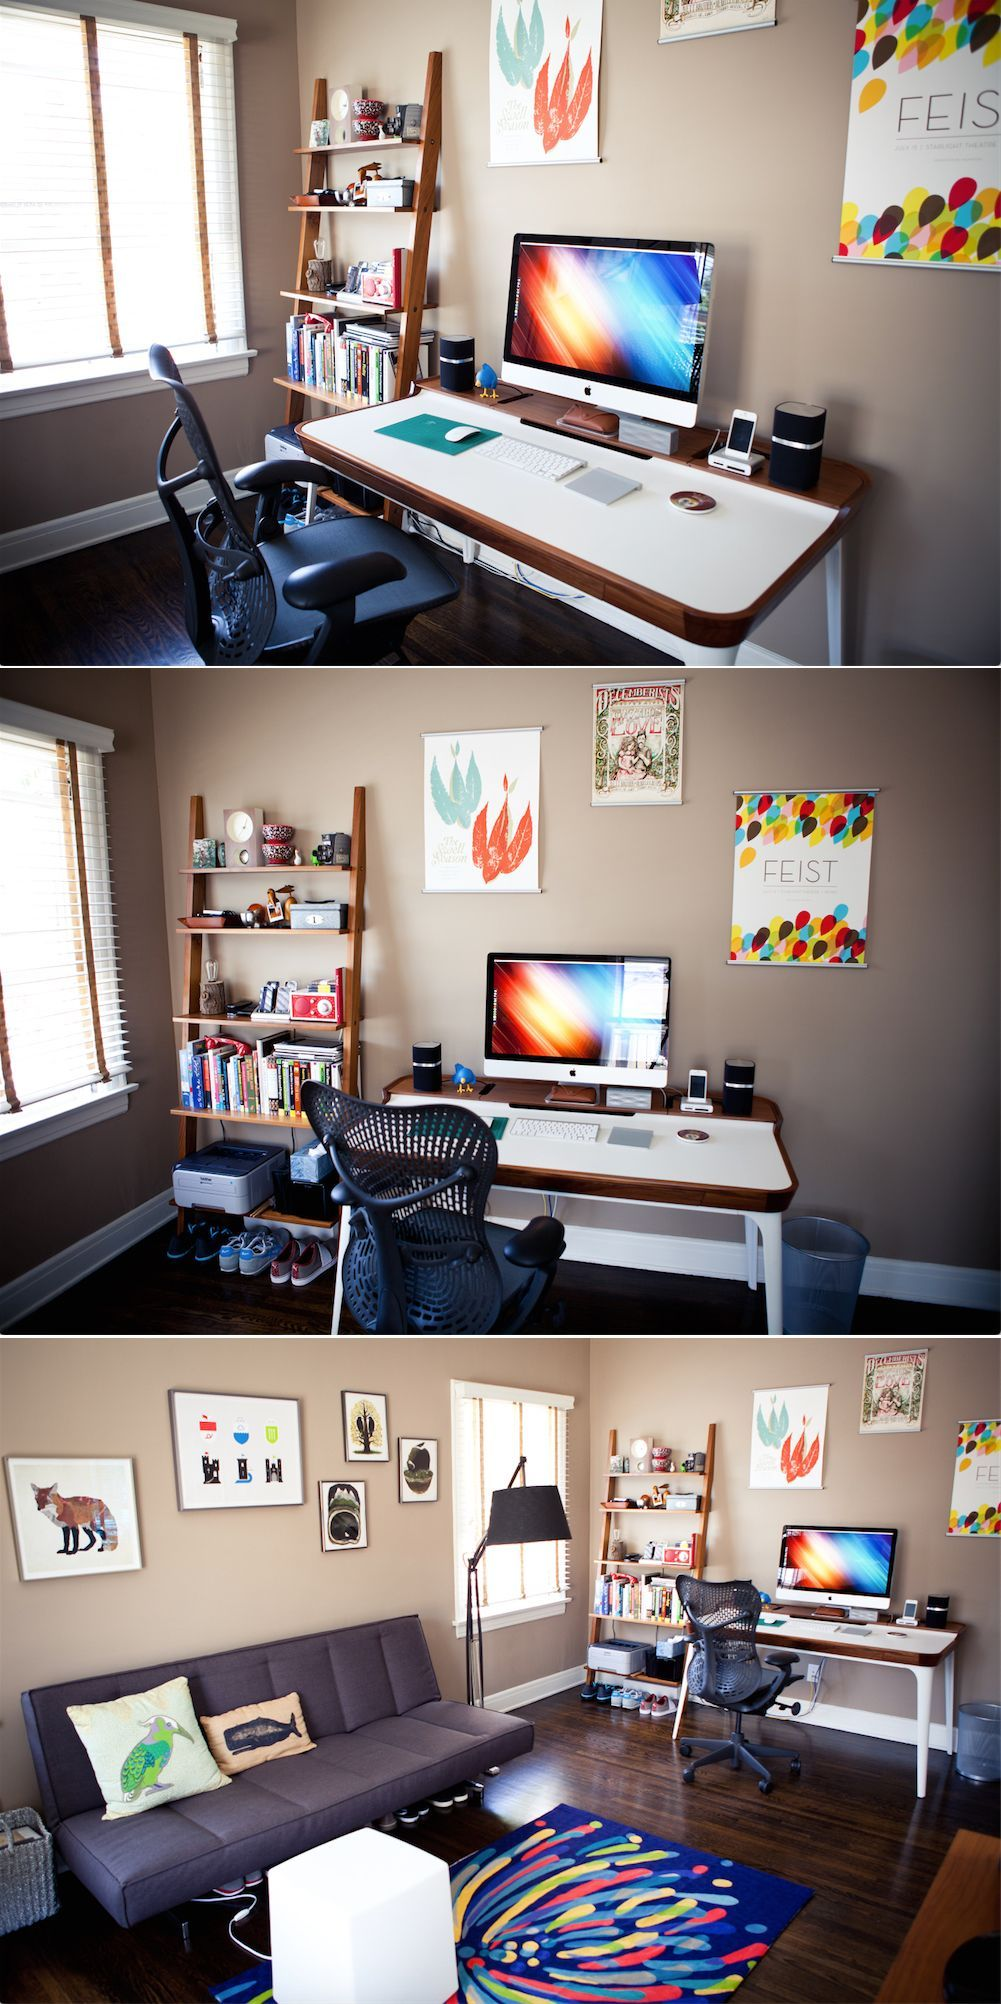 30 home office setup ideas to improve your productivity - Home office setup ideas ...